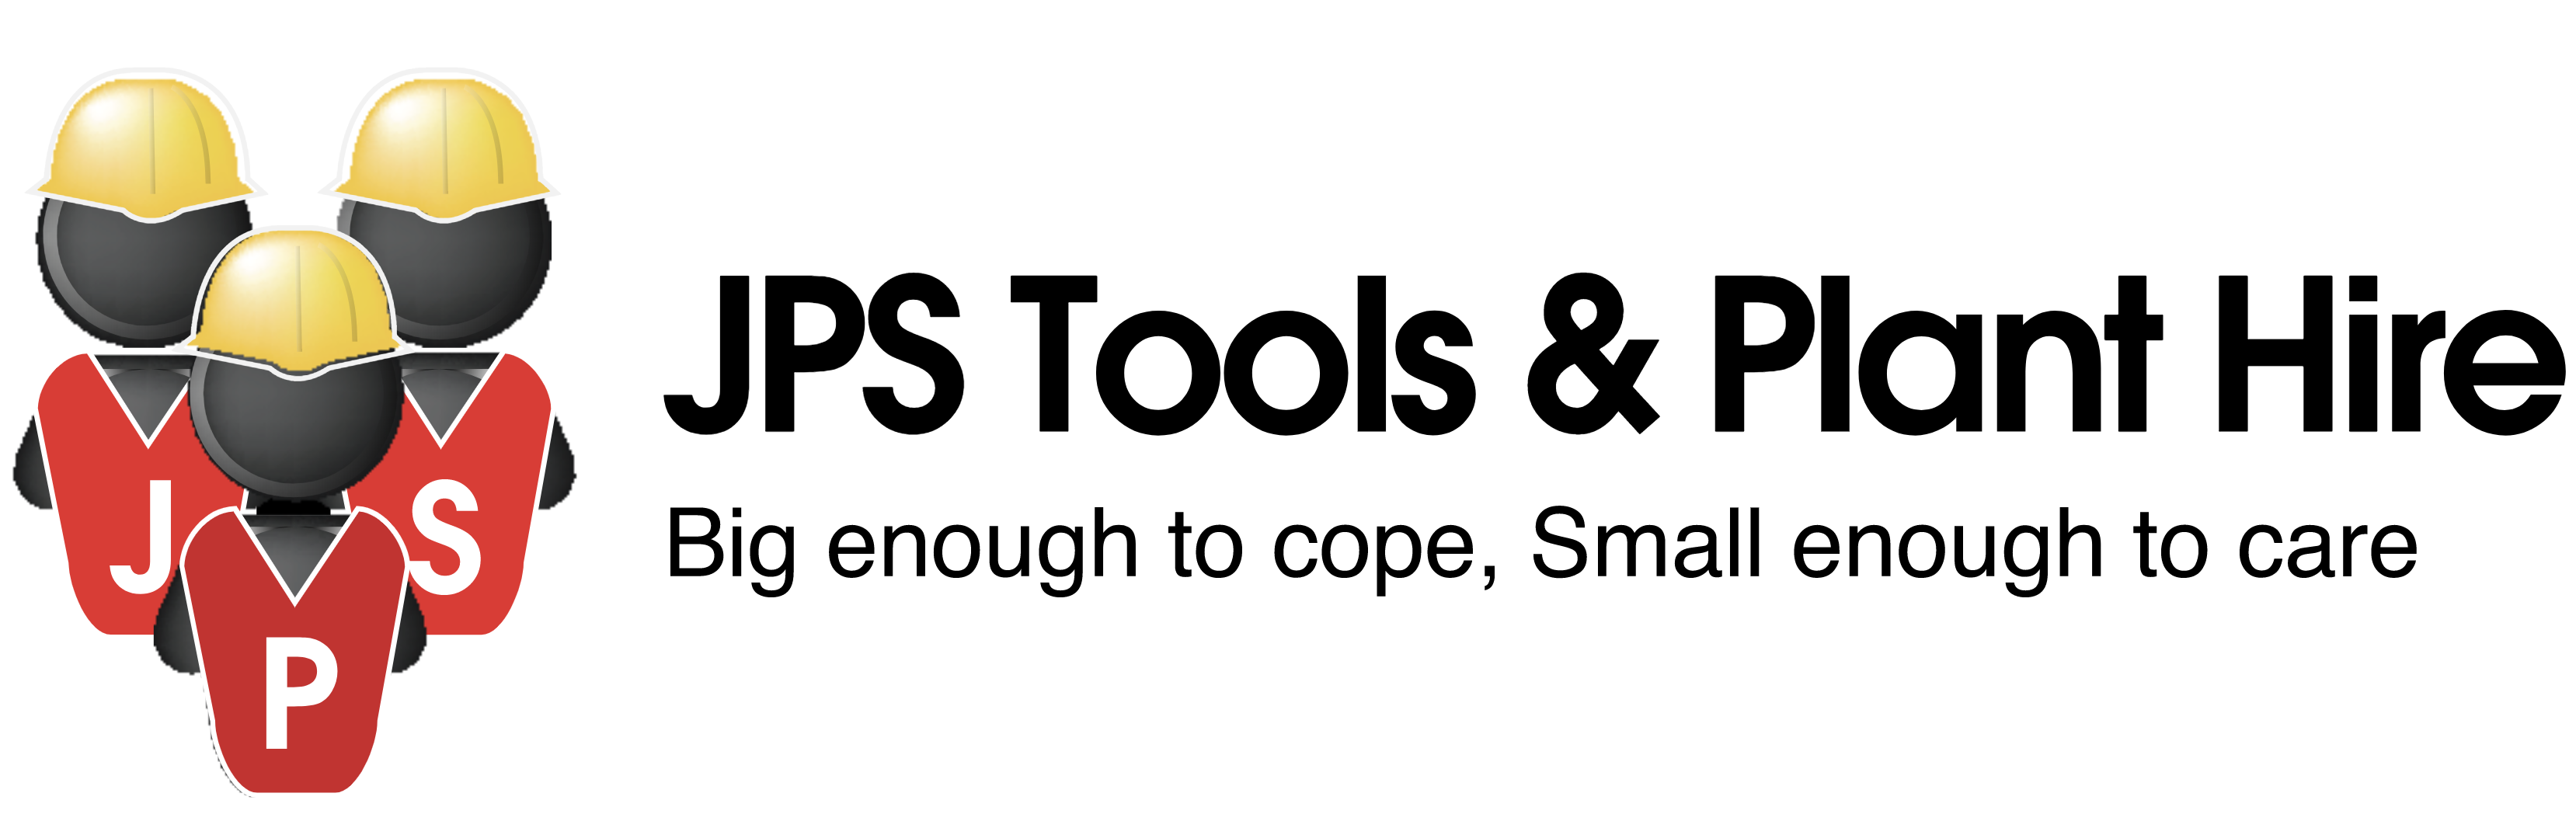 jps tools and plant logo